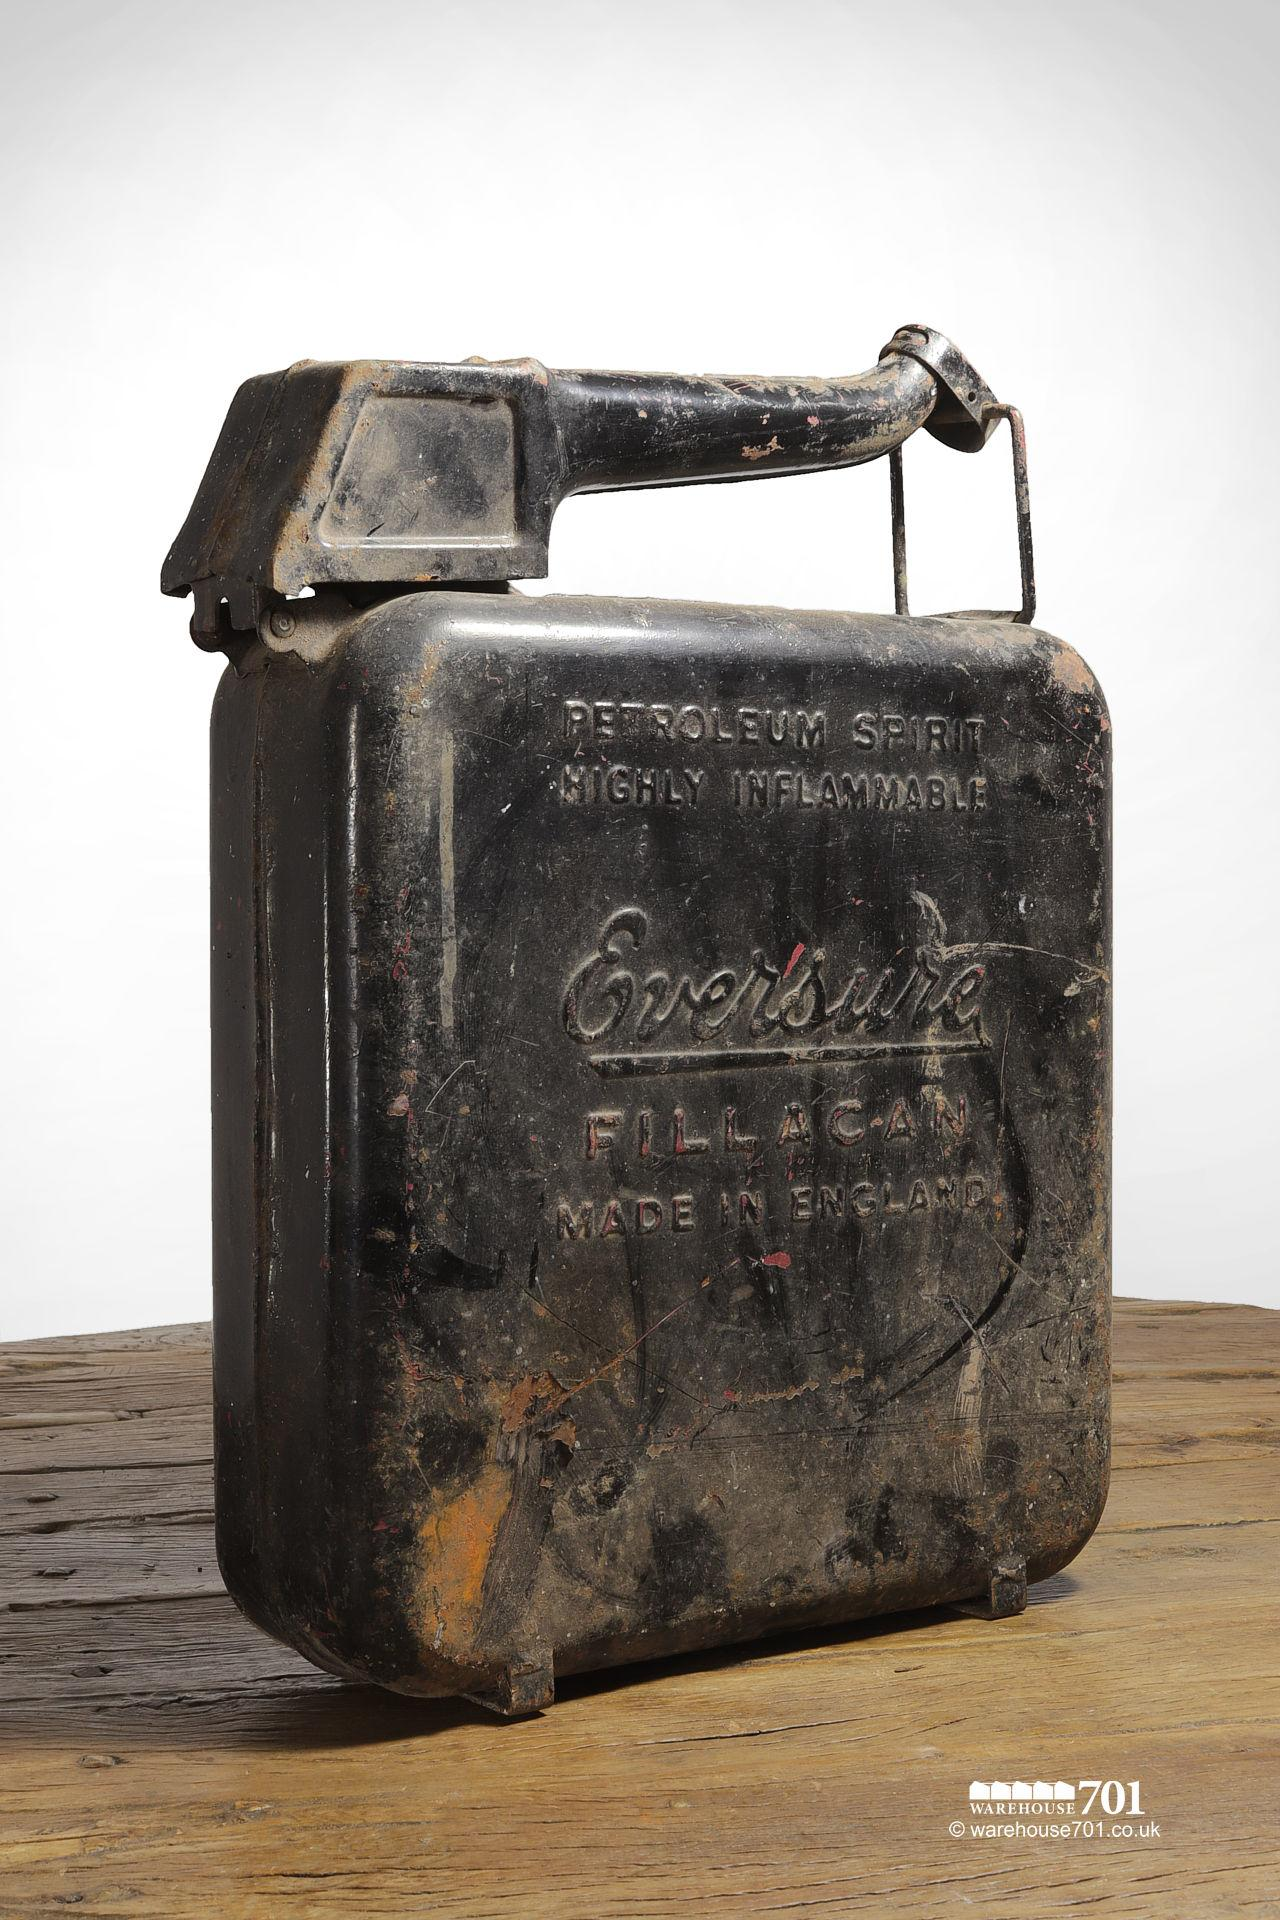 Assorted Salvaged Jerry Cans and Fuel and Oil Cans #3